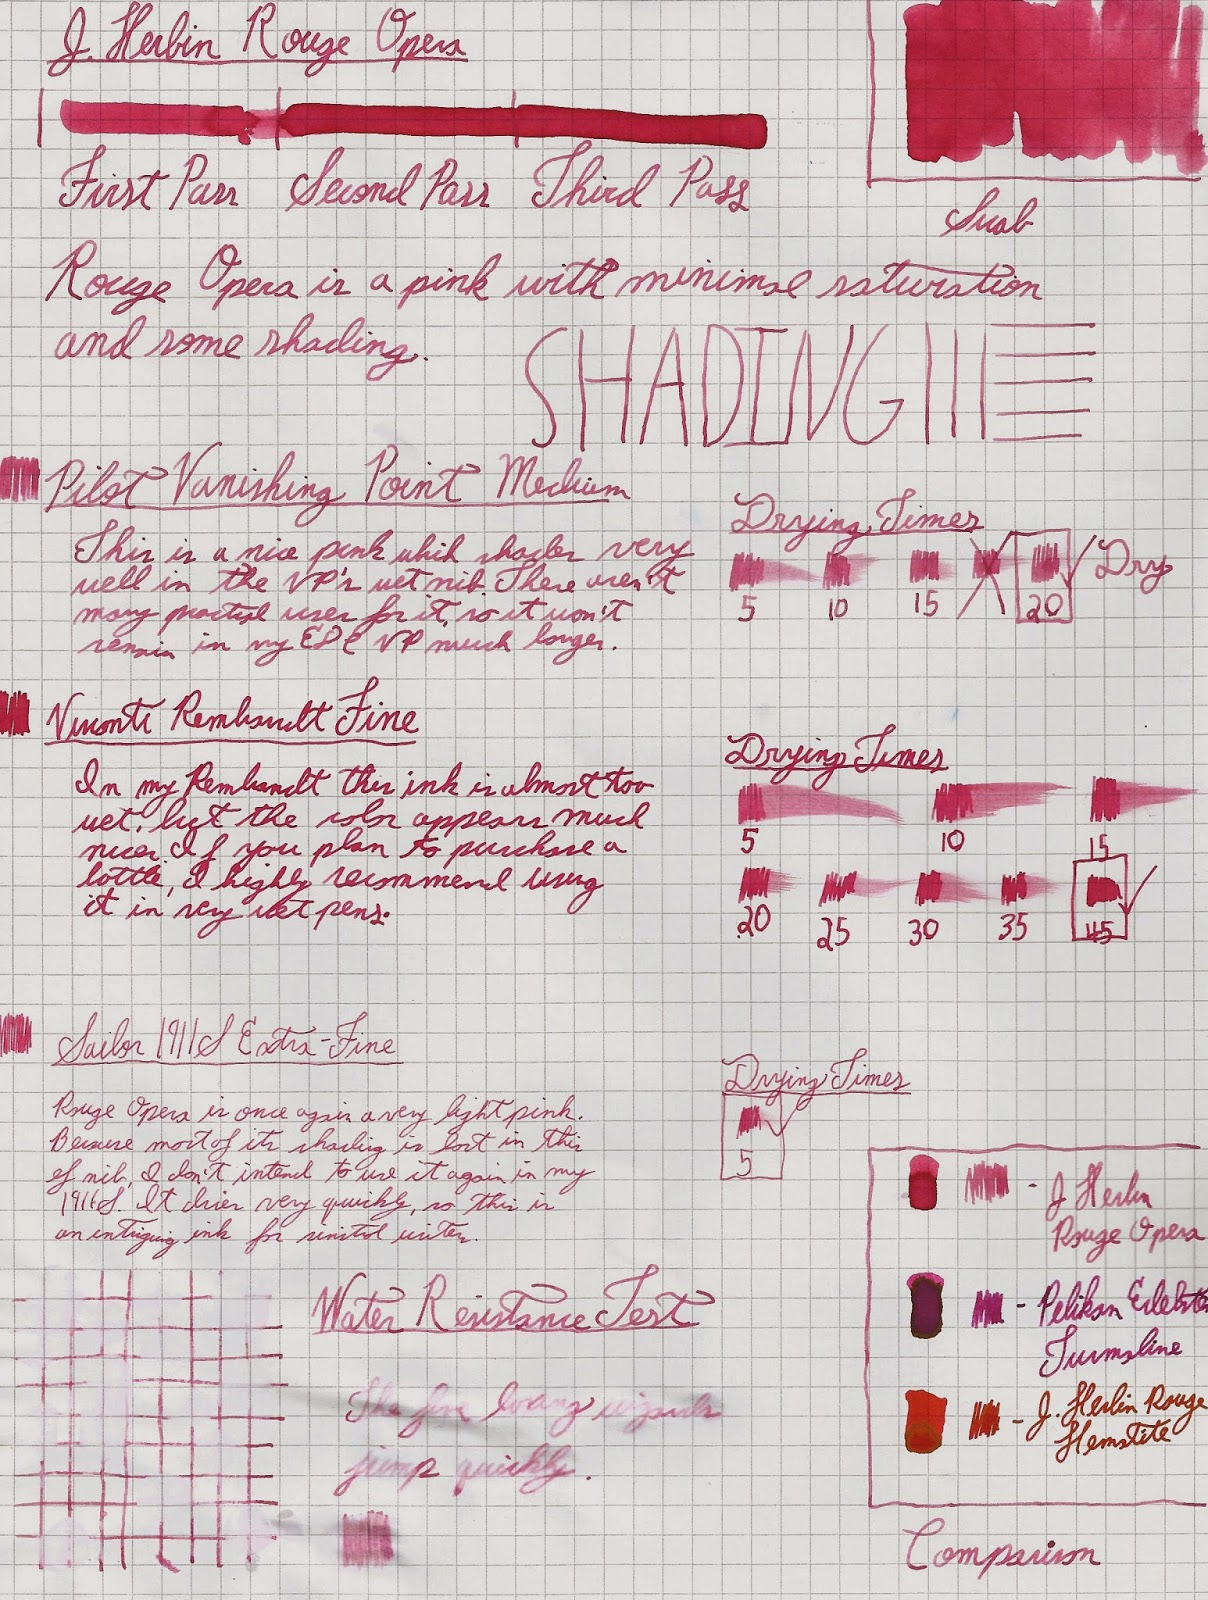 J. Herbin Rouge Opera Writing Sample